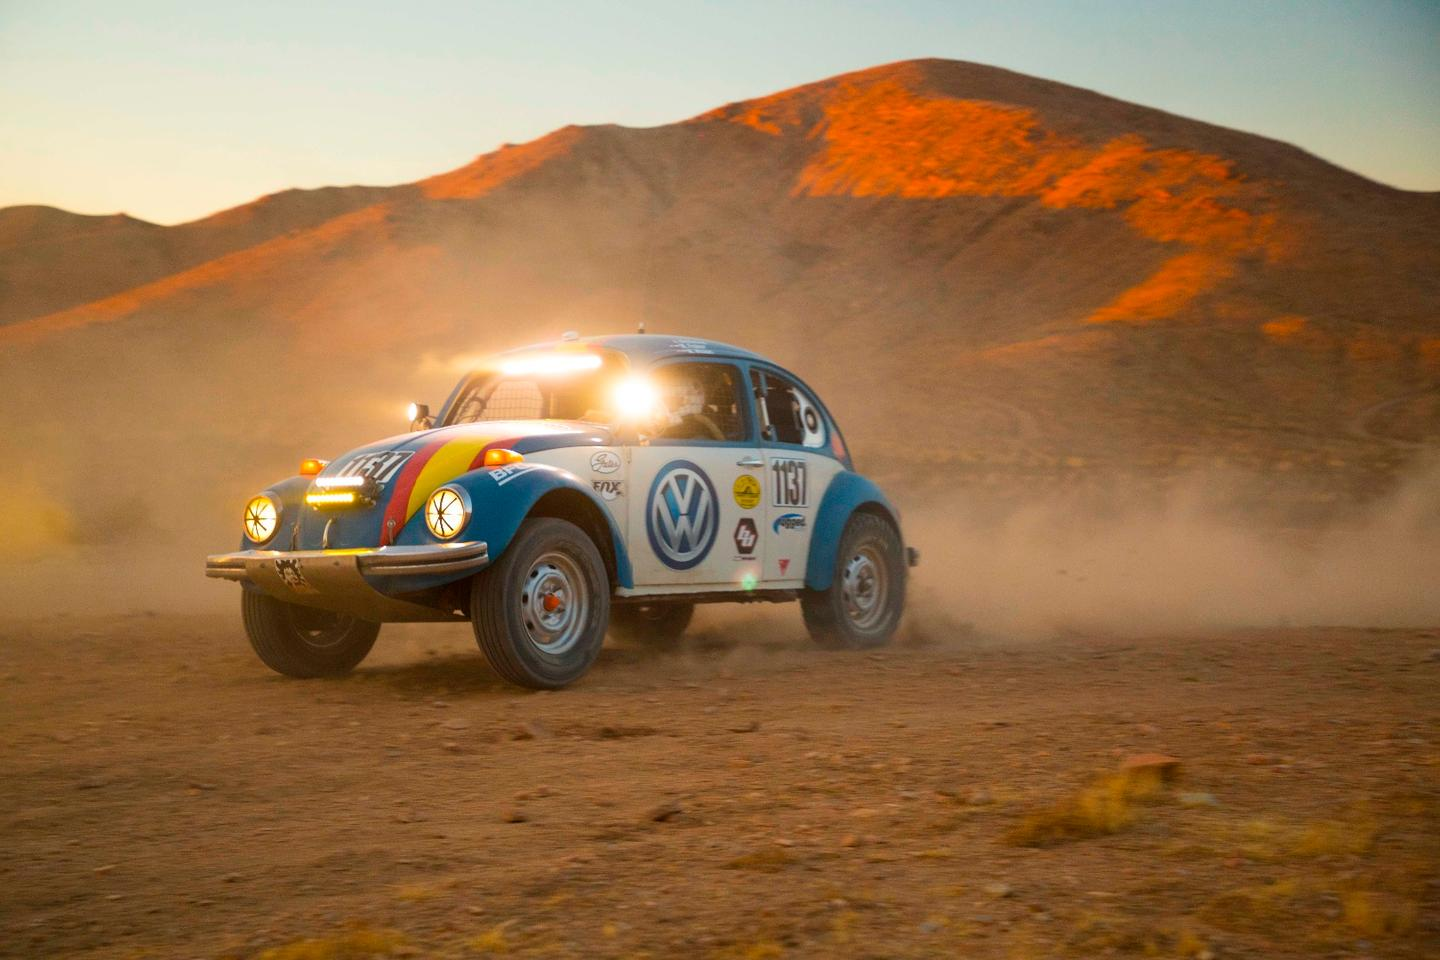 Tope has been restored and modified for desert racing, running with a stock 1.6-liter air-cooled horizontally-opposed engine and a type 1 transaxle with limited modifications for the rigors of the desert race